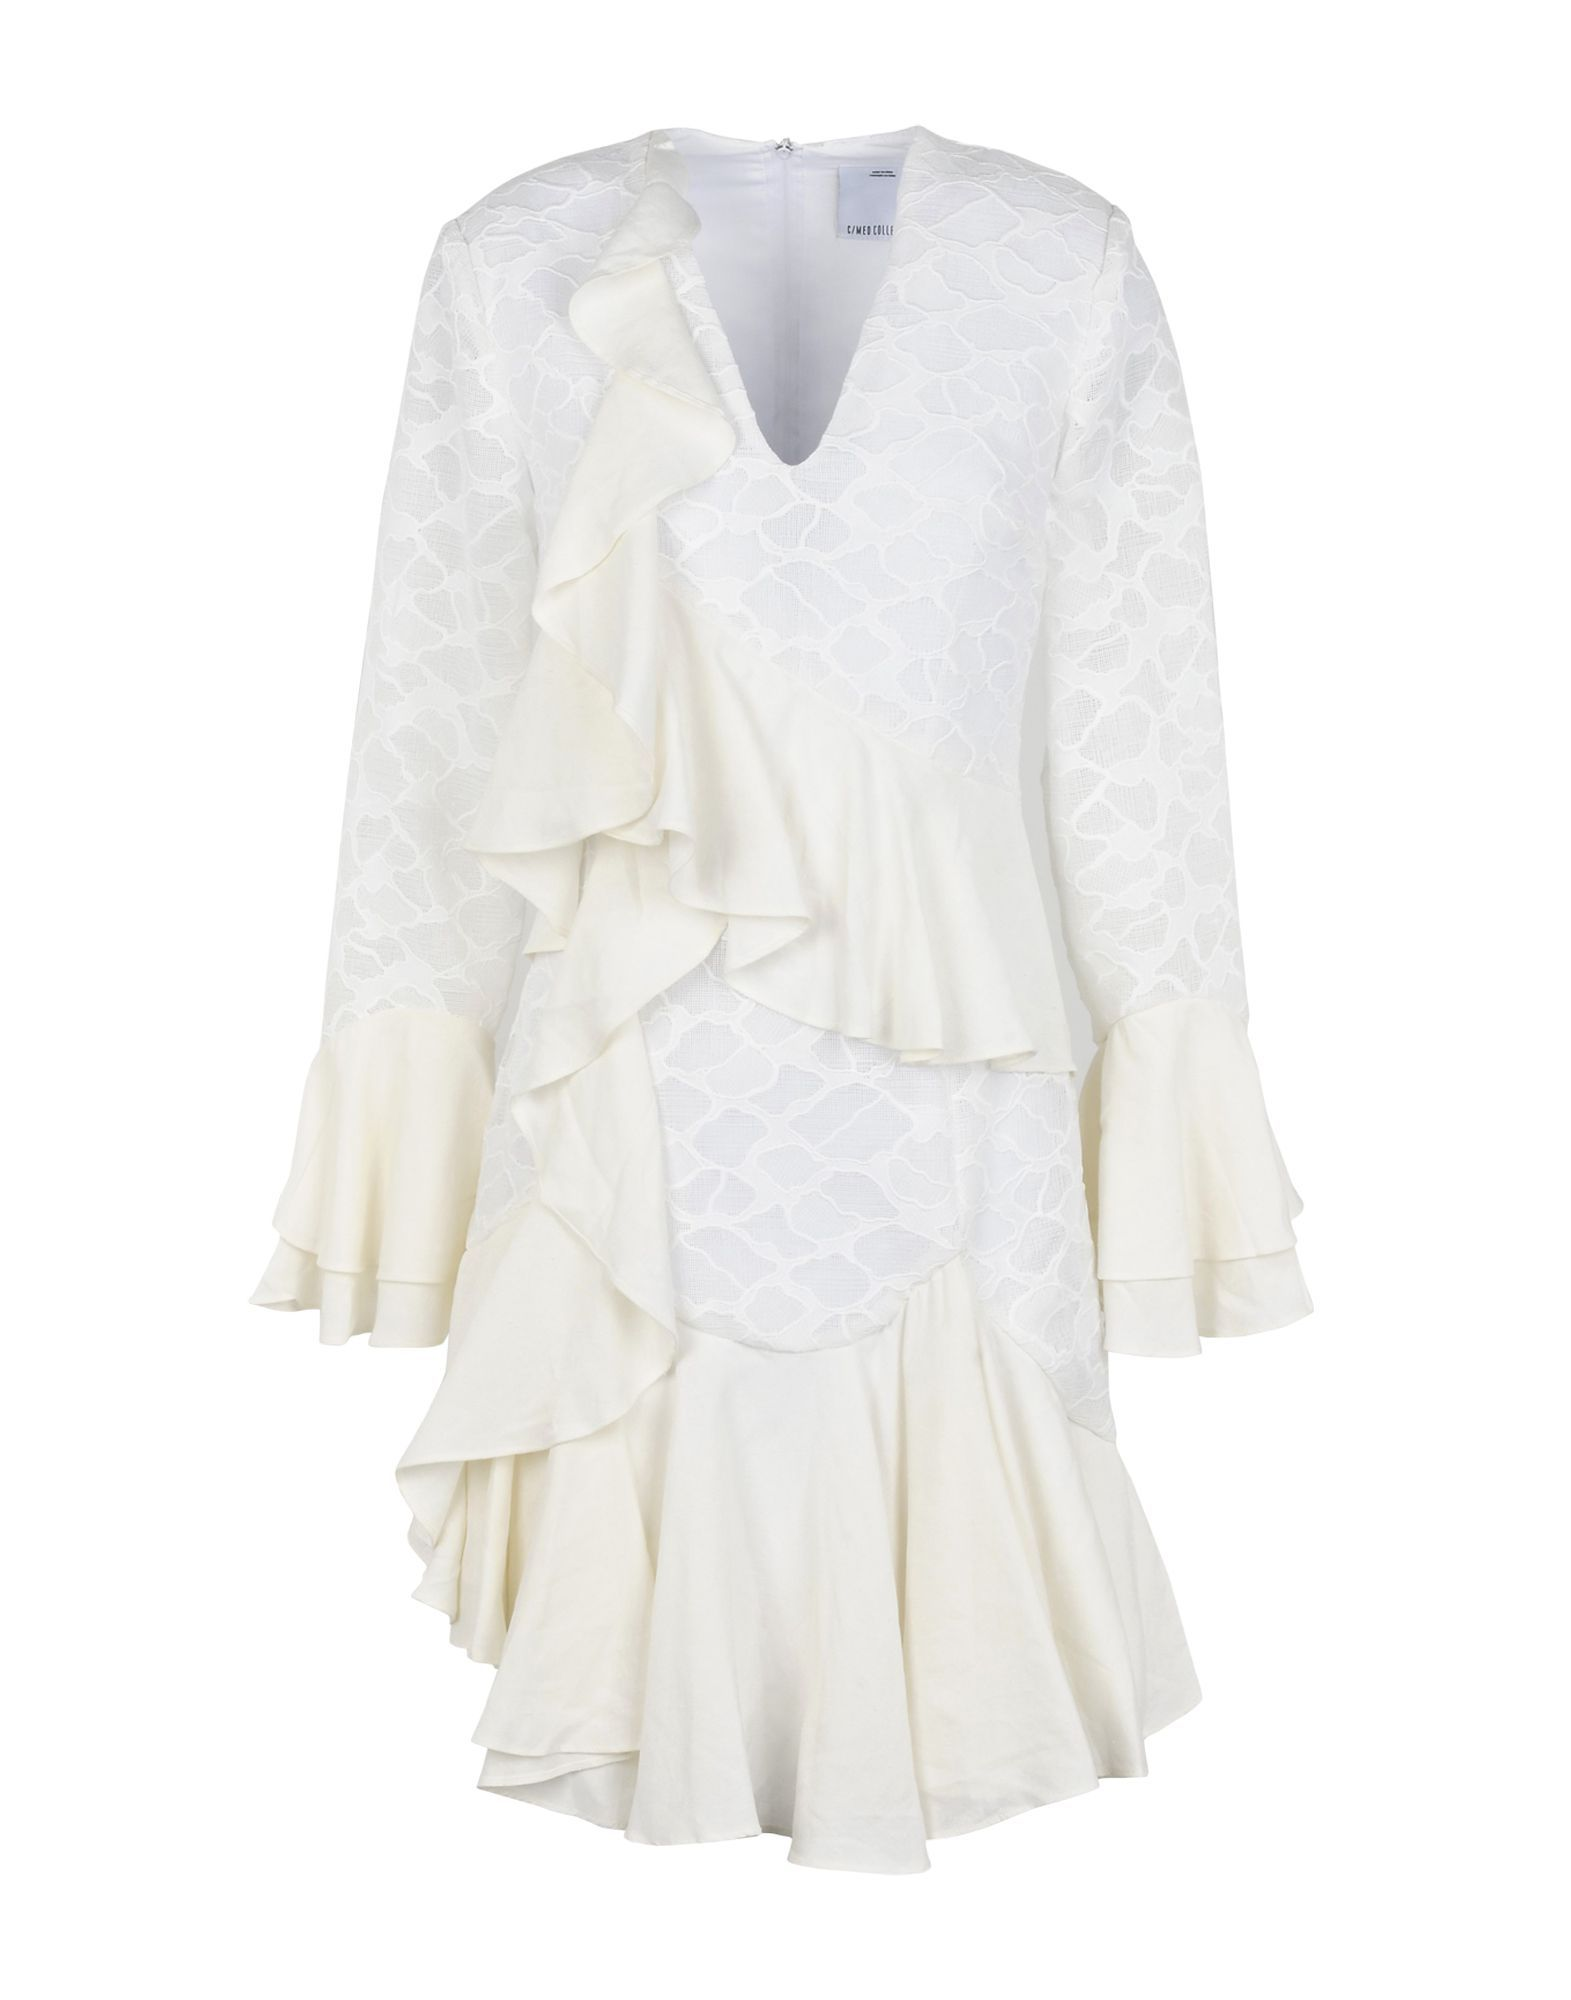 C/Meo Collective White Lace Draped Dress